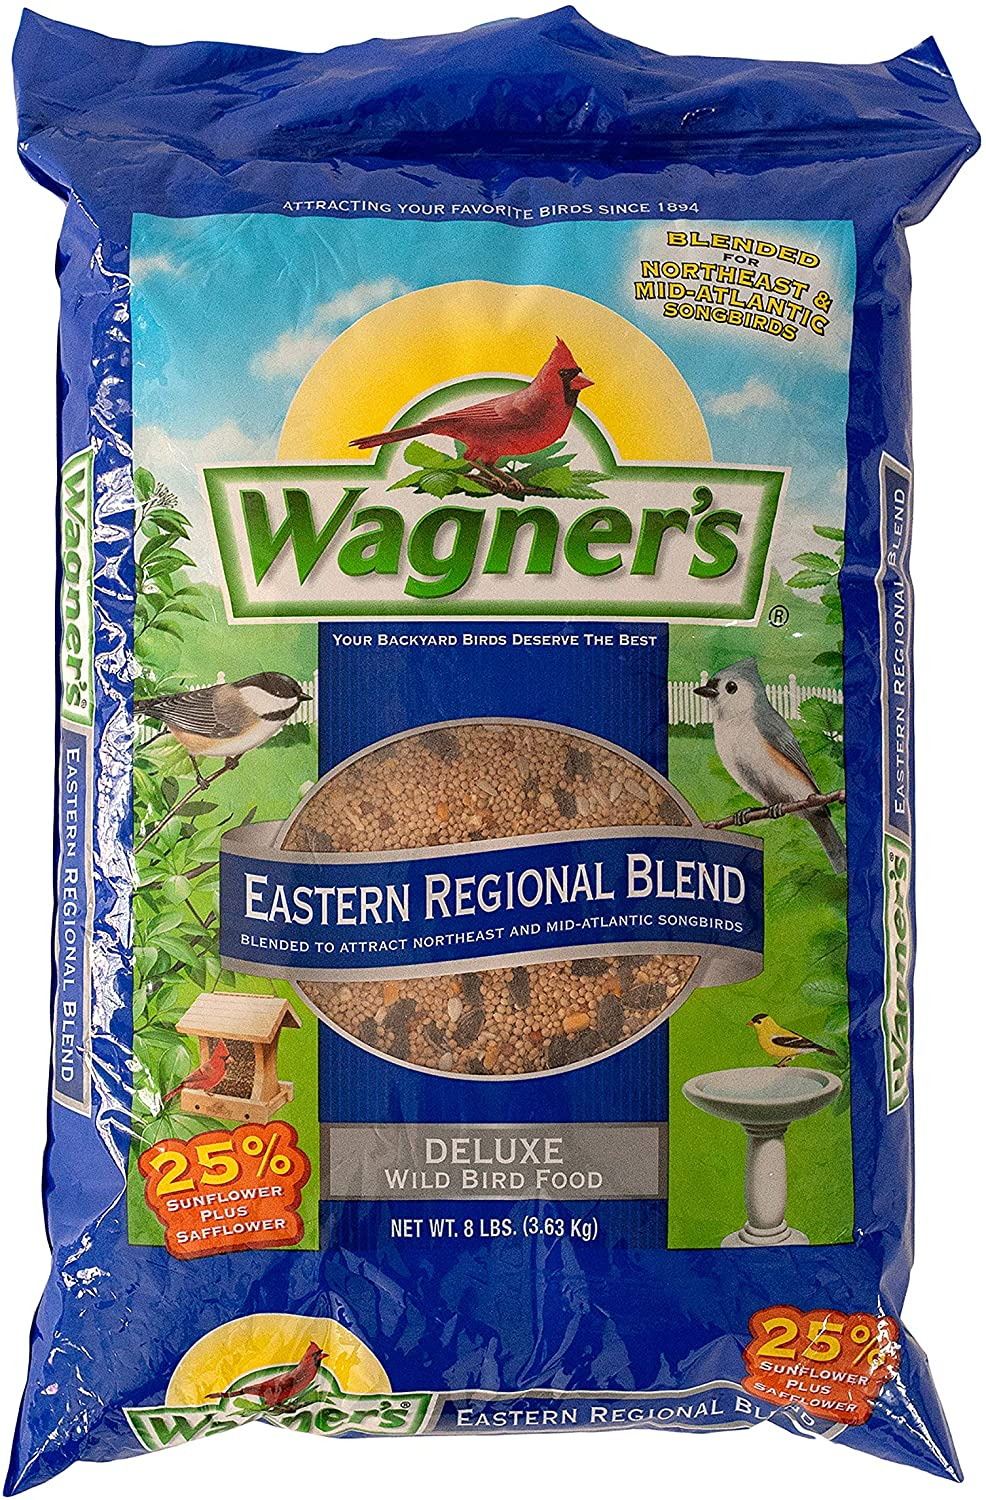 Wagner's 62011 Eastern Regional Blend Wild Bird Food, 8-Pound Bag